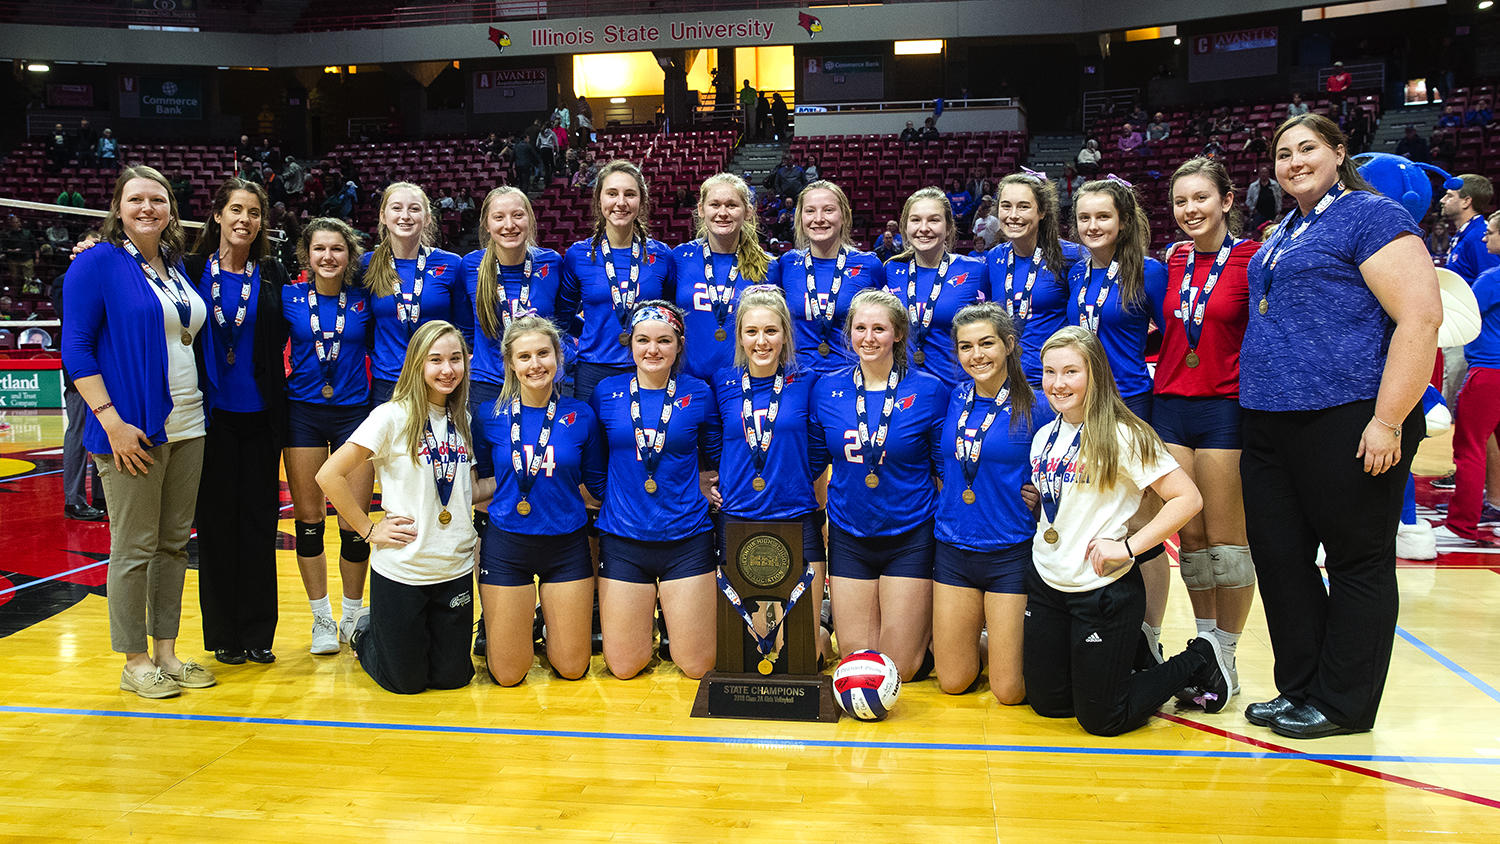 The Pleasant Plains Cardinals pose with their championship trophy after beating Galena in the IHSA Class 2A Volleyball championship at Redbird Arena in Normal Saturday, Nov. 10, 2018. [Ted Schurter/The State Journal-Register]